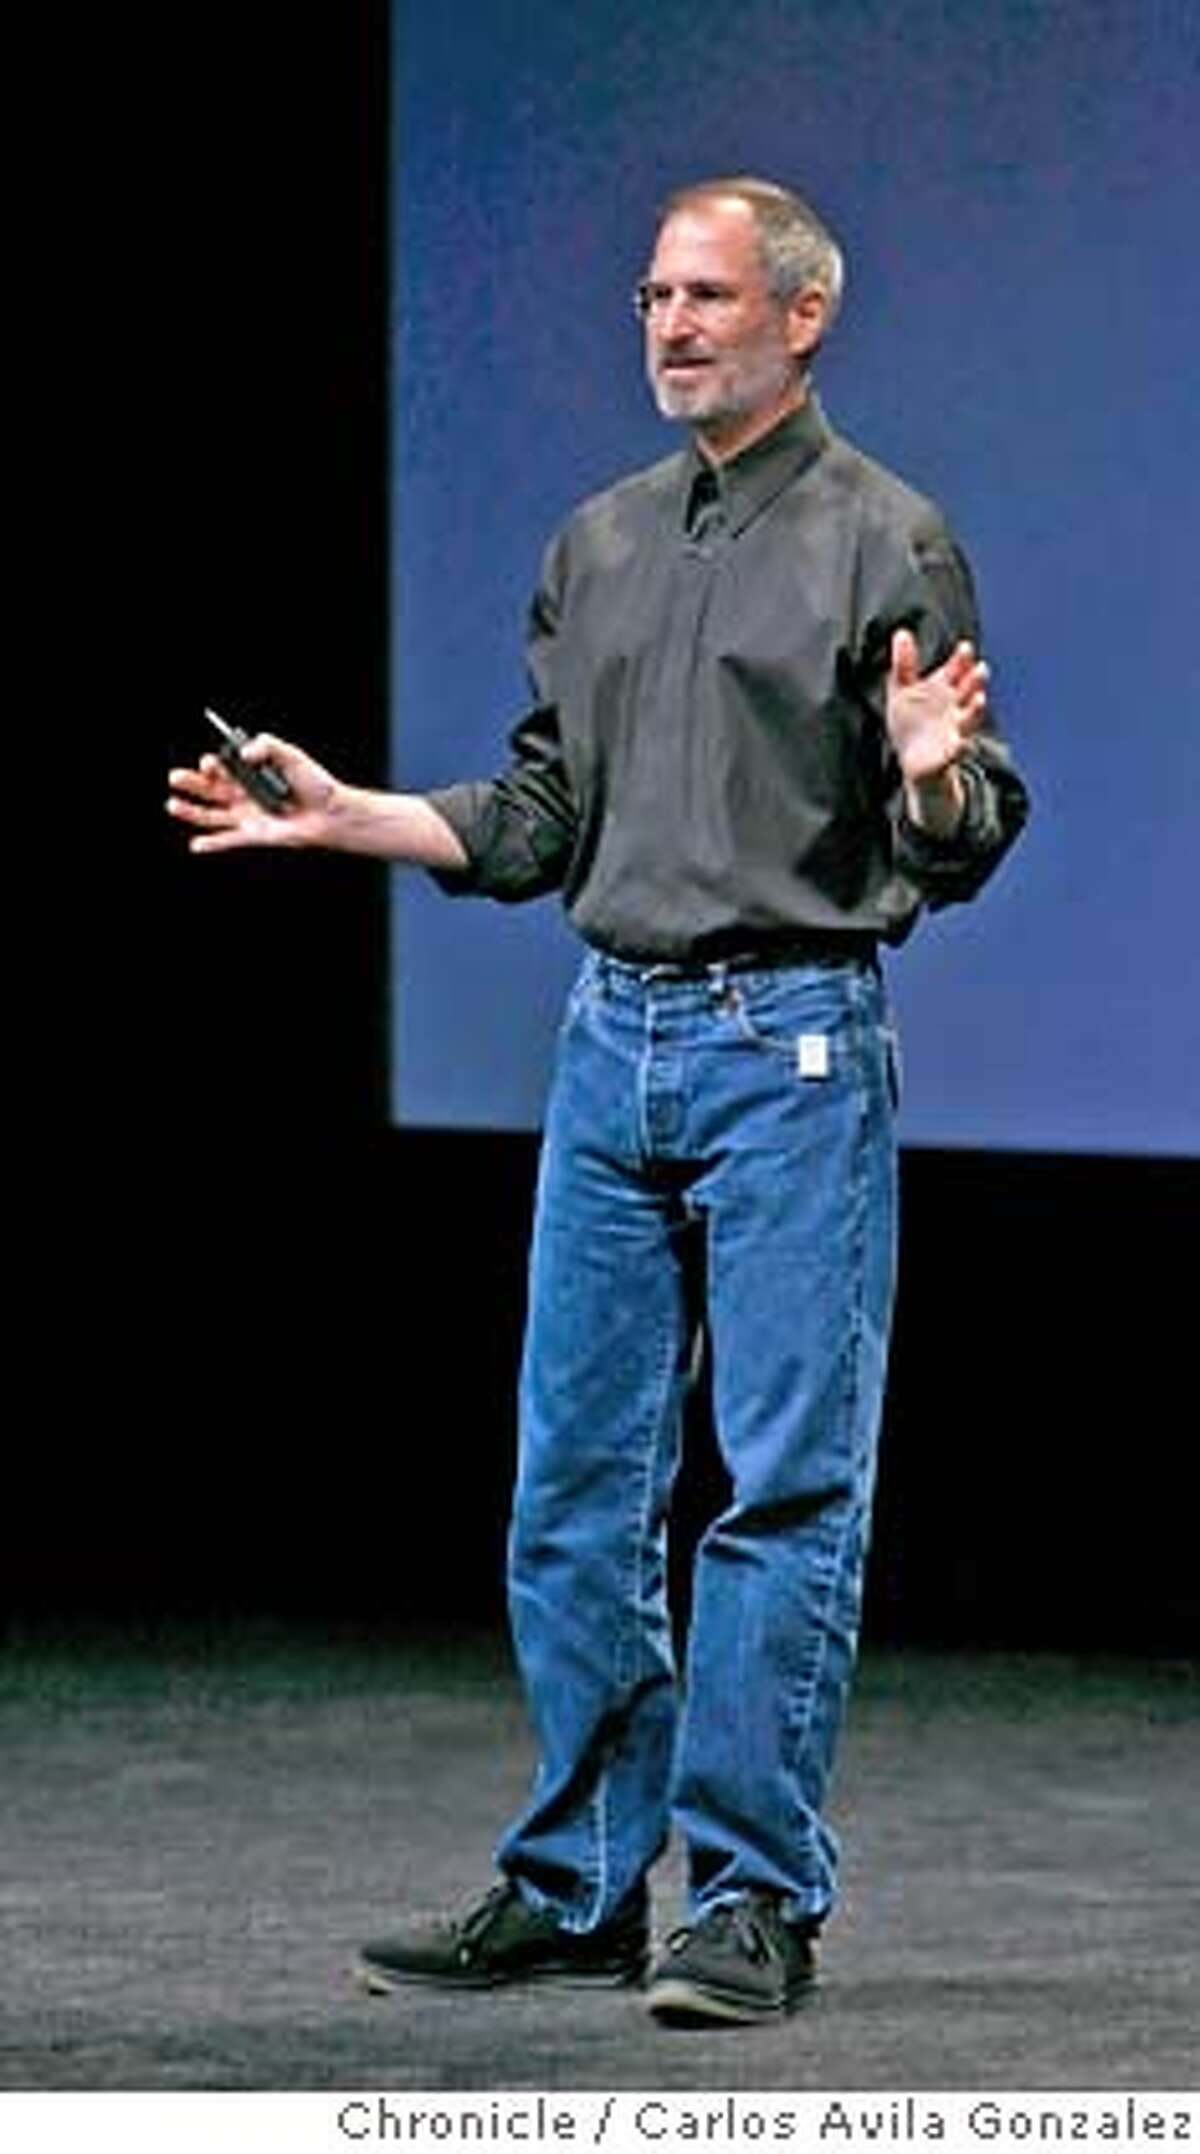 APPLE13_010_CAG.JPG Steve Jobs speaks to the audience wearing one of the new iPod Shuffles on his pants pocket. Apple unveils its latest iPod and iTunes upgrades and devices at a special event Tuesday, September 12, 2006, in San Francisco, Ca. Photo by Carlos Avila Gonzalez/The San Francisco Chronicle Photo taken on 9/12/06, in San Francisco, CA, USA **All names cq (source) Ran on: 10-05-2006 Ran on: 10-05-2006 MANDATORY CREDIT FOR PHOTOG AND SAN FRANCISCO CHRONICLE/ -MAGS OUT